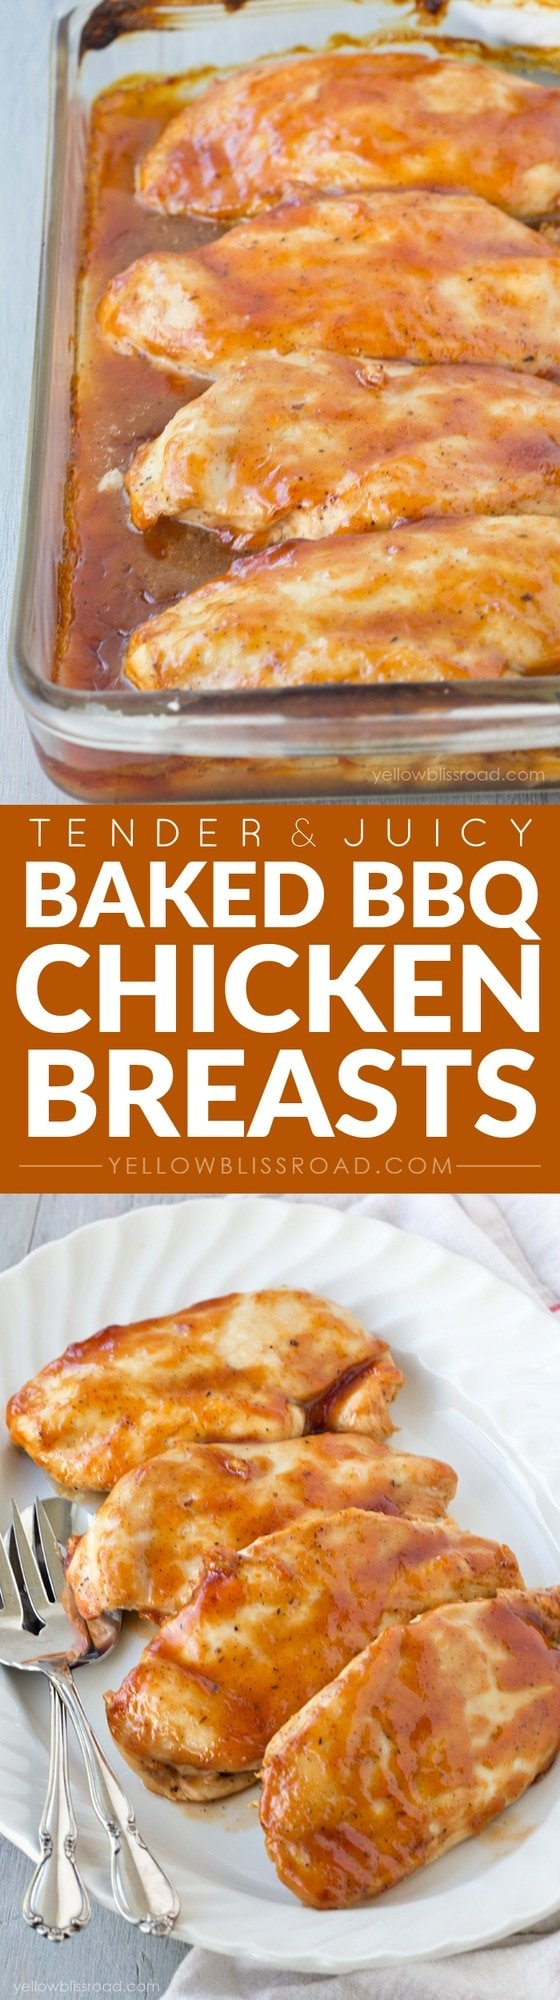 Tender and Juicy Oven Baked Barbecued Chicken Breasts